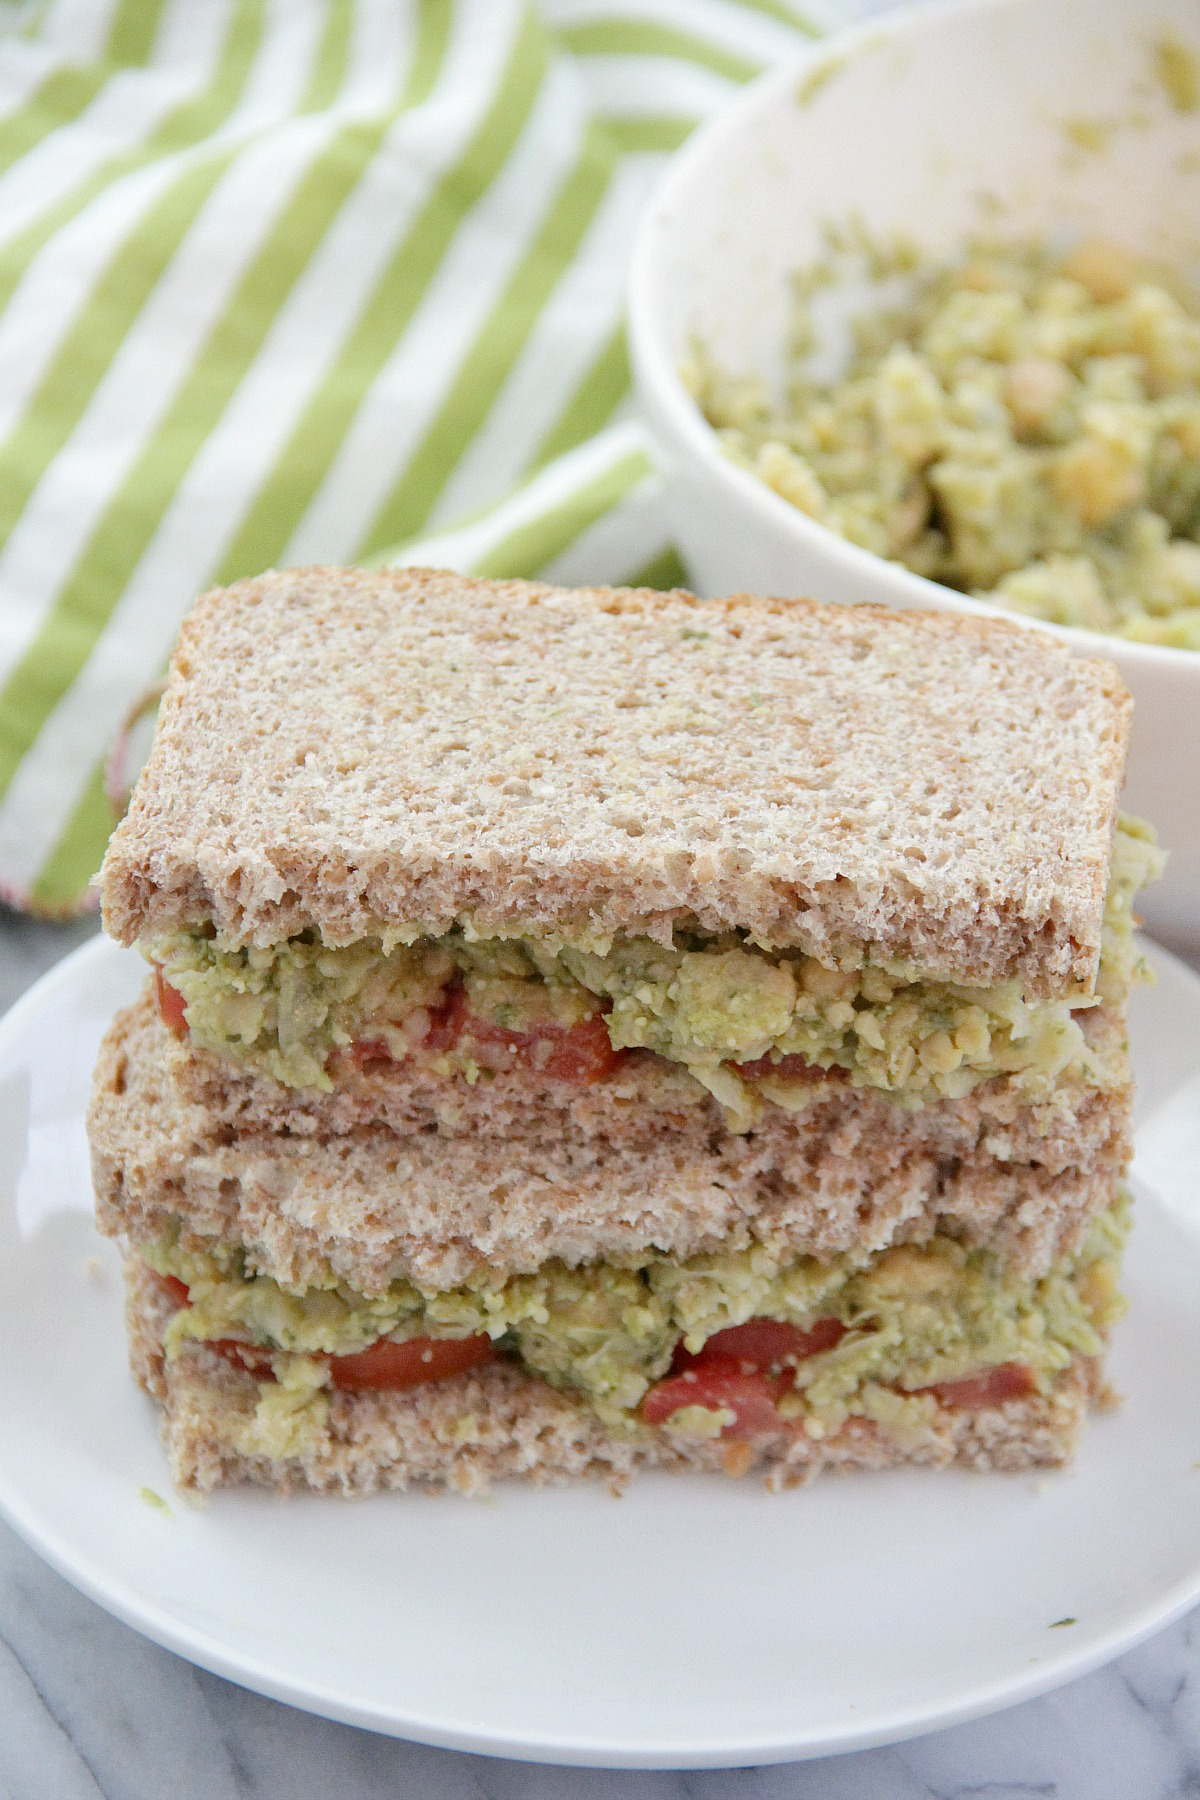 Smashed Chickpea Avocado and Pesto Sandwiches